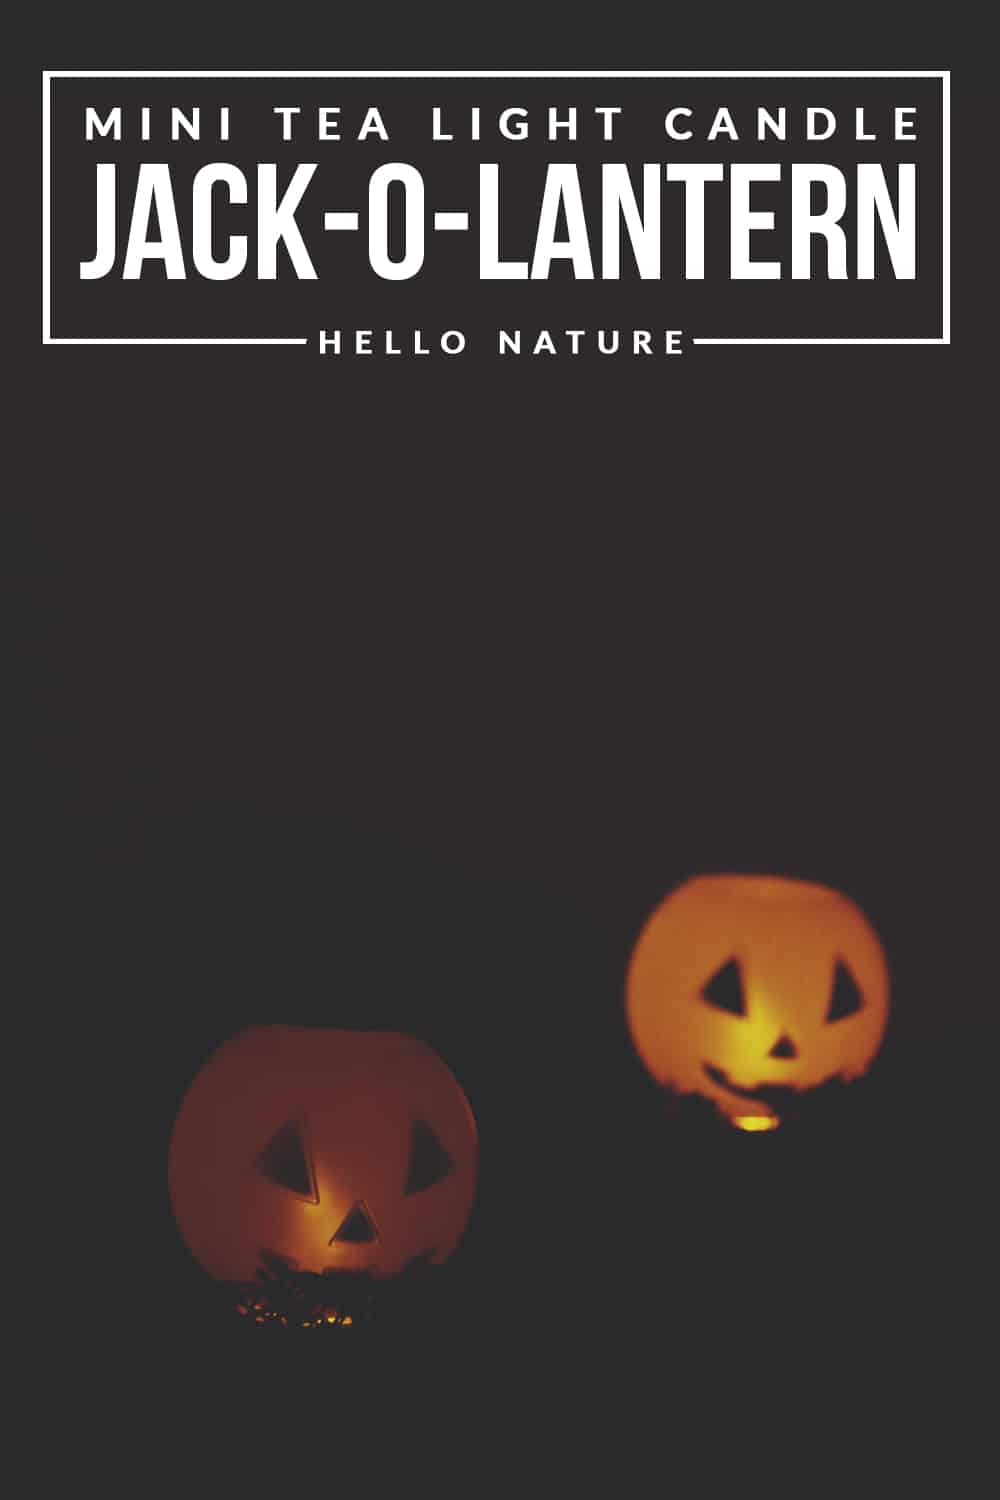 This easy to make Tea Light Jack-O-Lantern DIY is the perfect Halloween craft to add some extra spooky lighting and decor to your home!